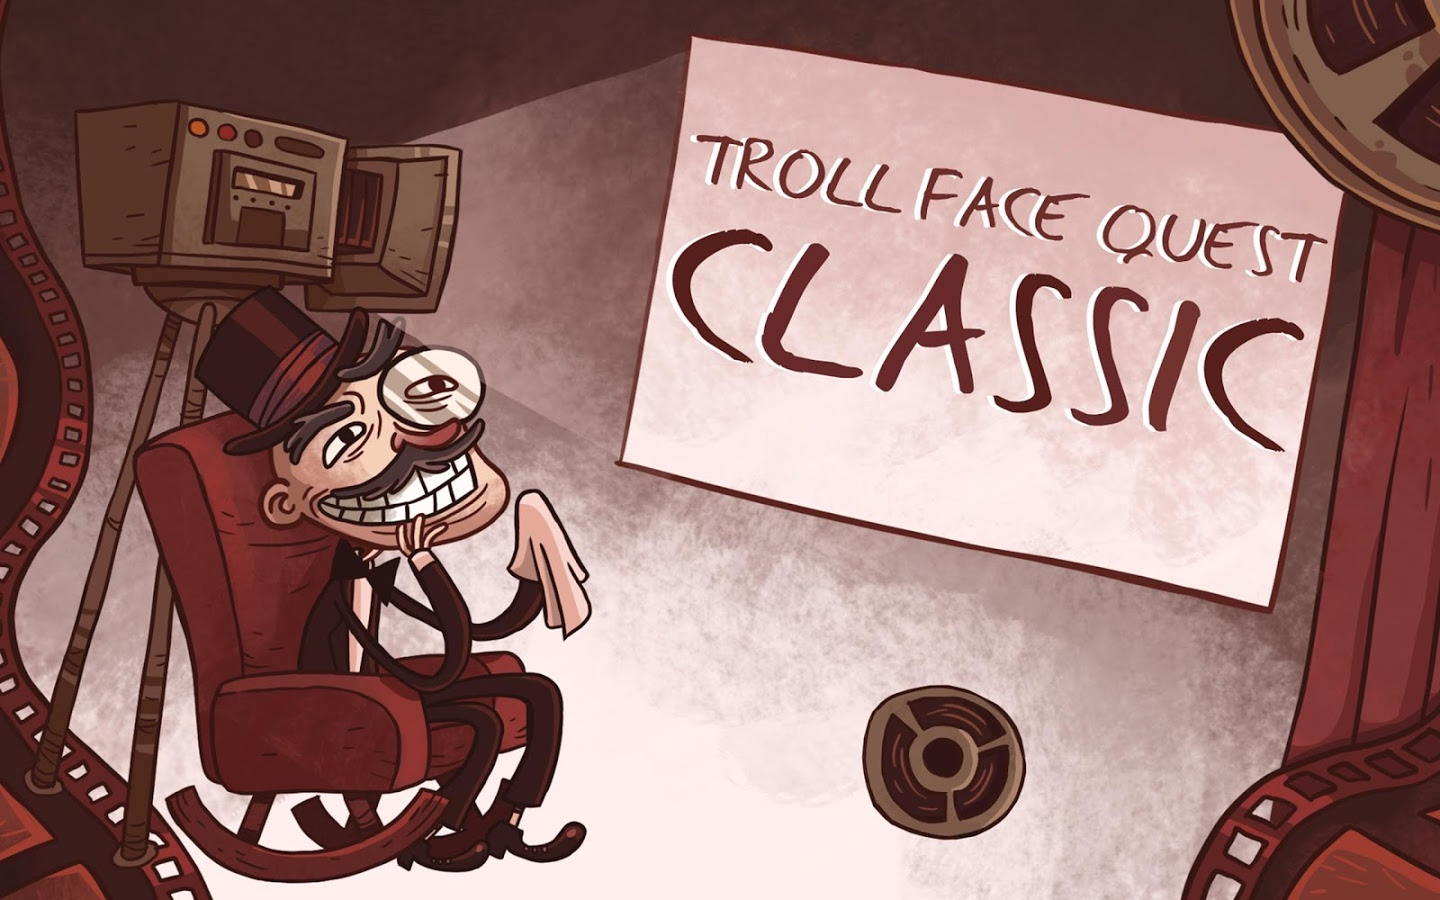 Troll Face Quest Classic for pc